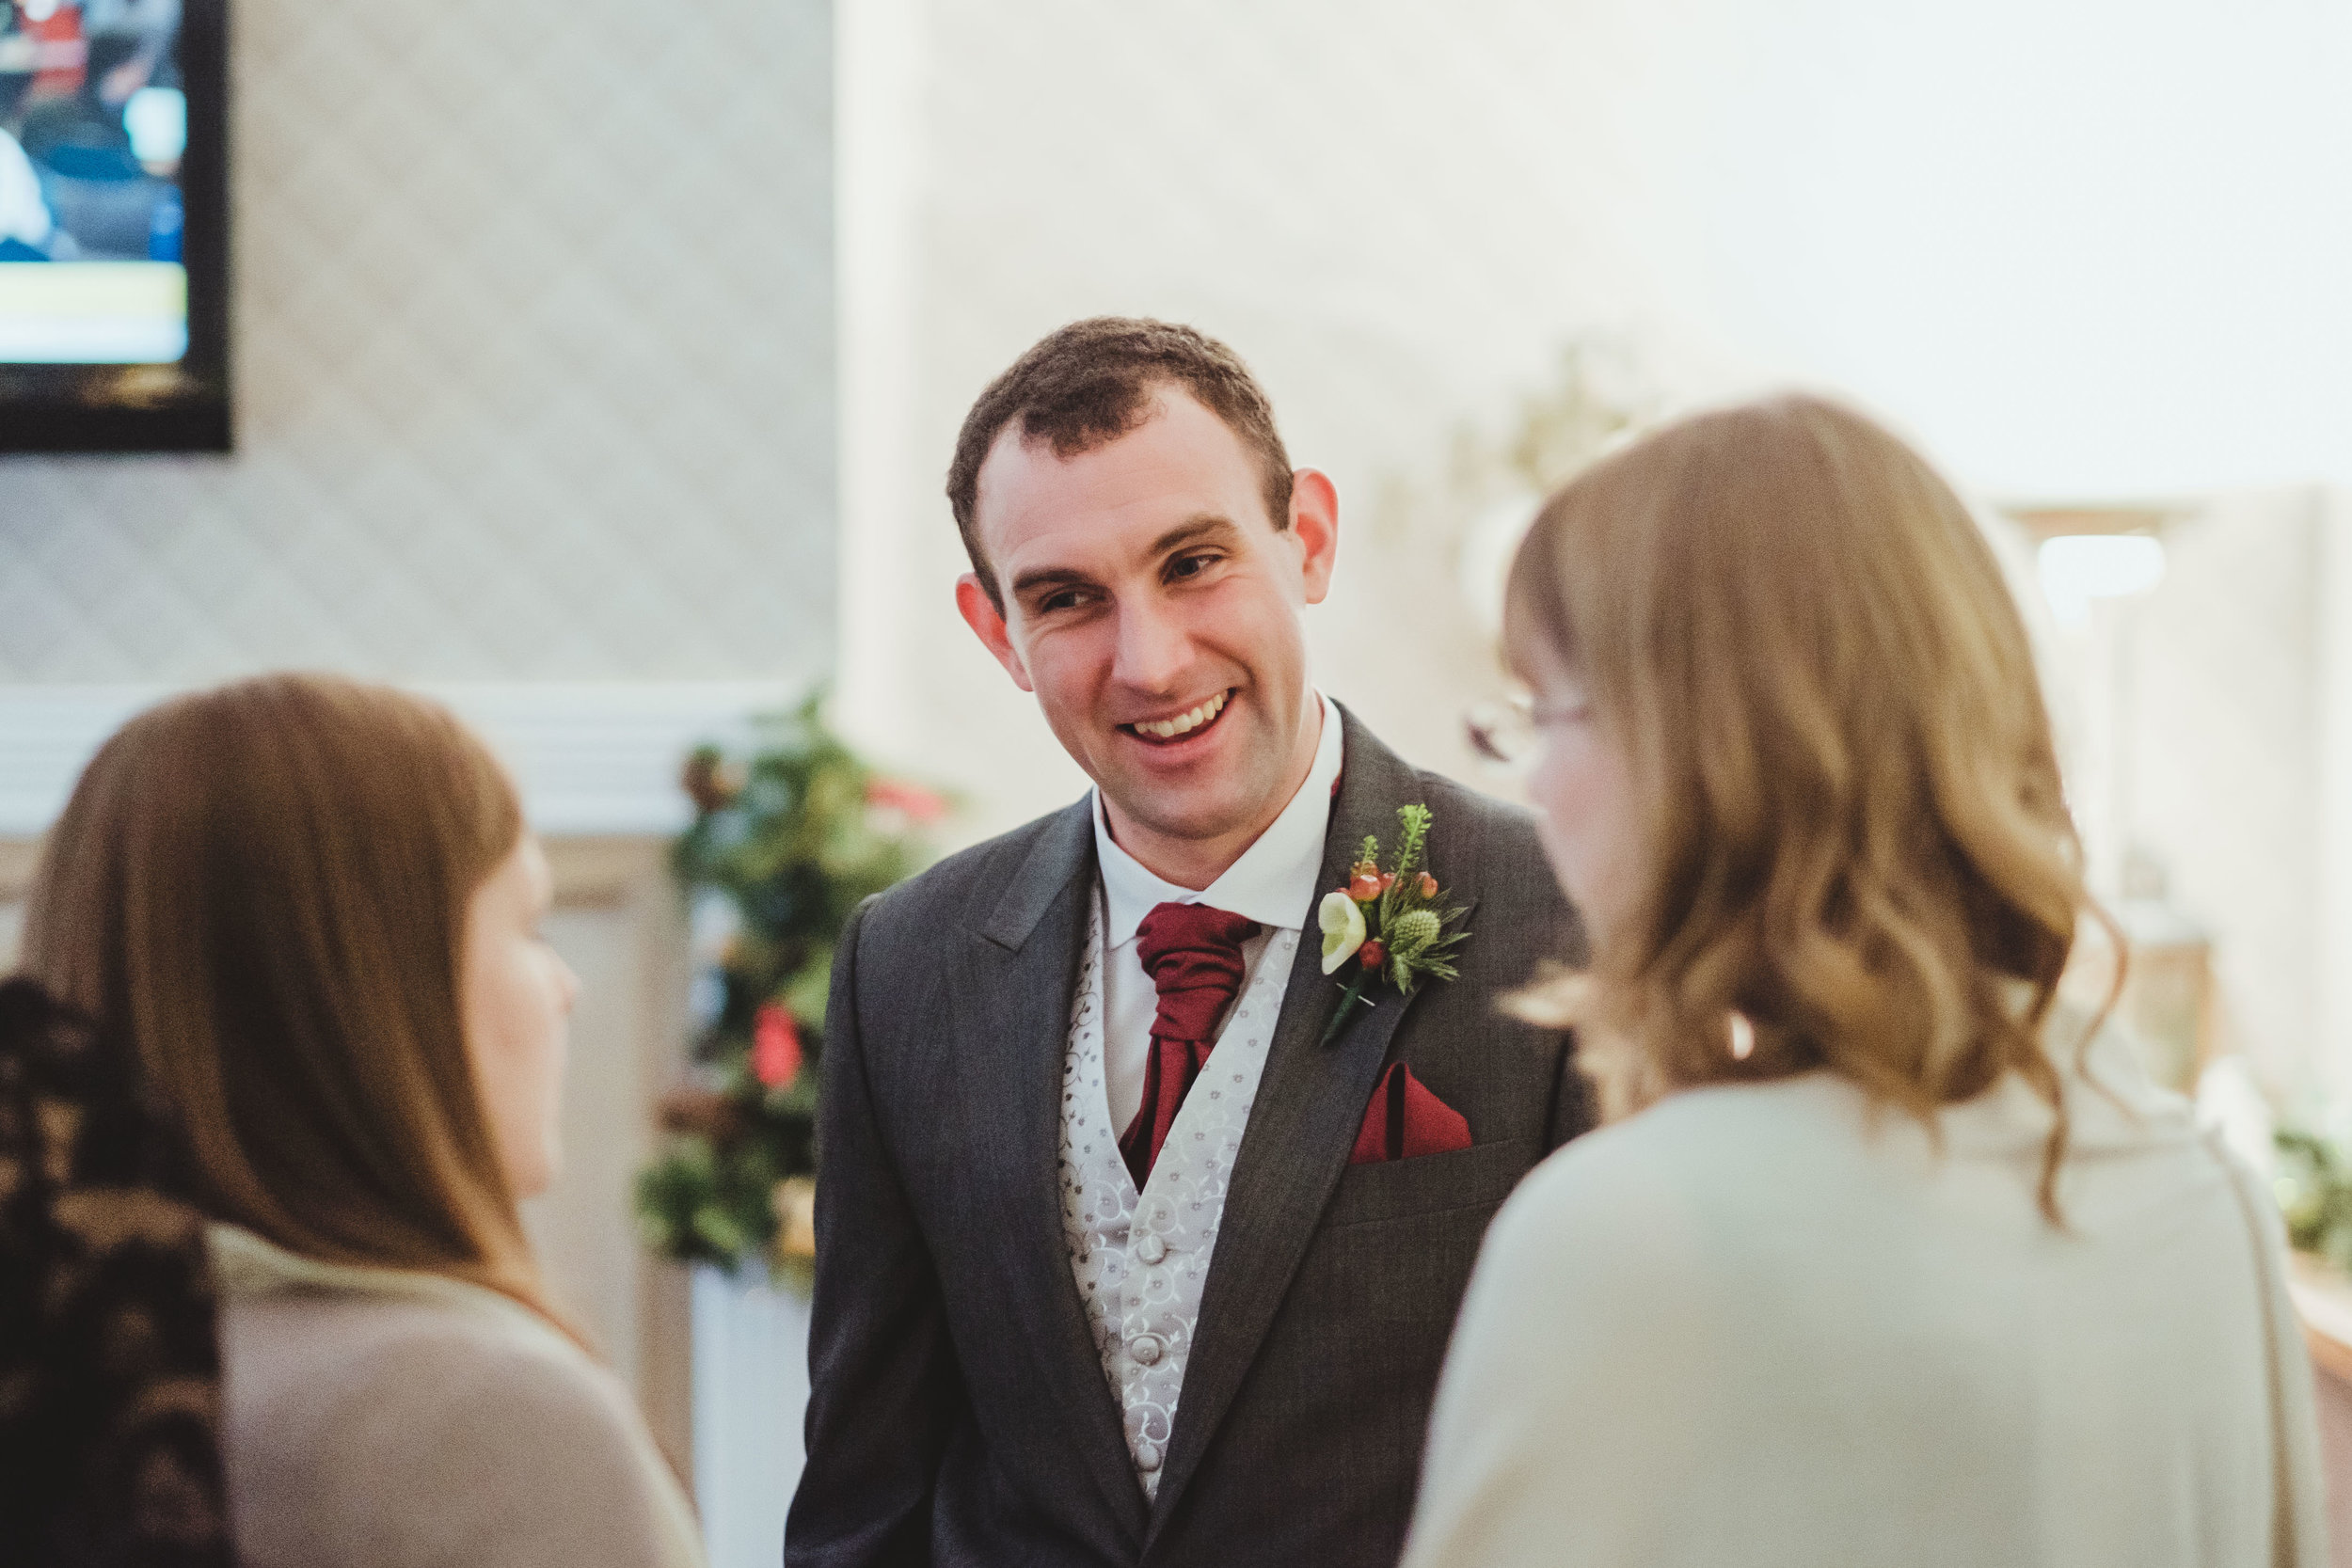 Groom laughs with wedding guests